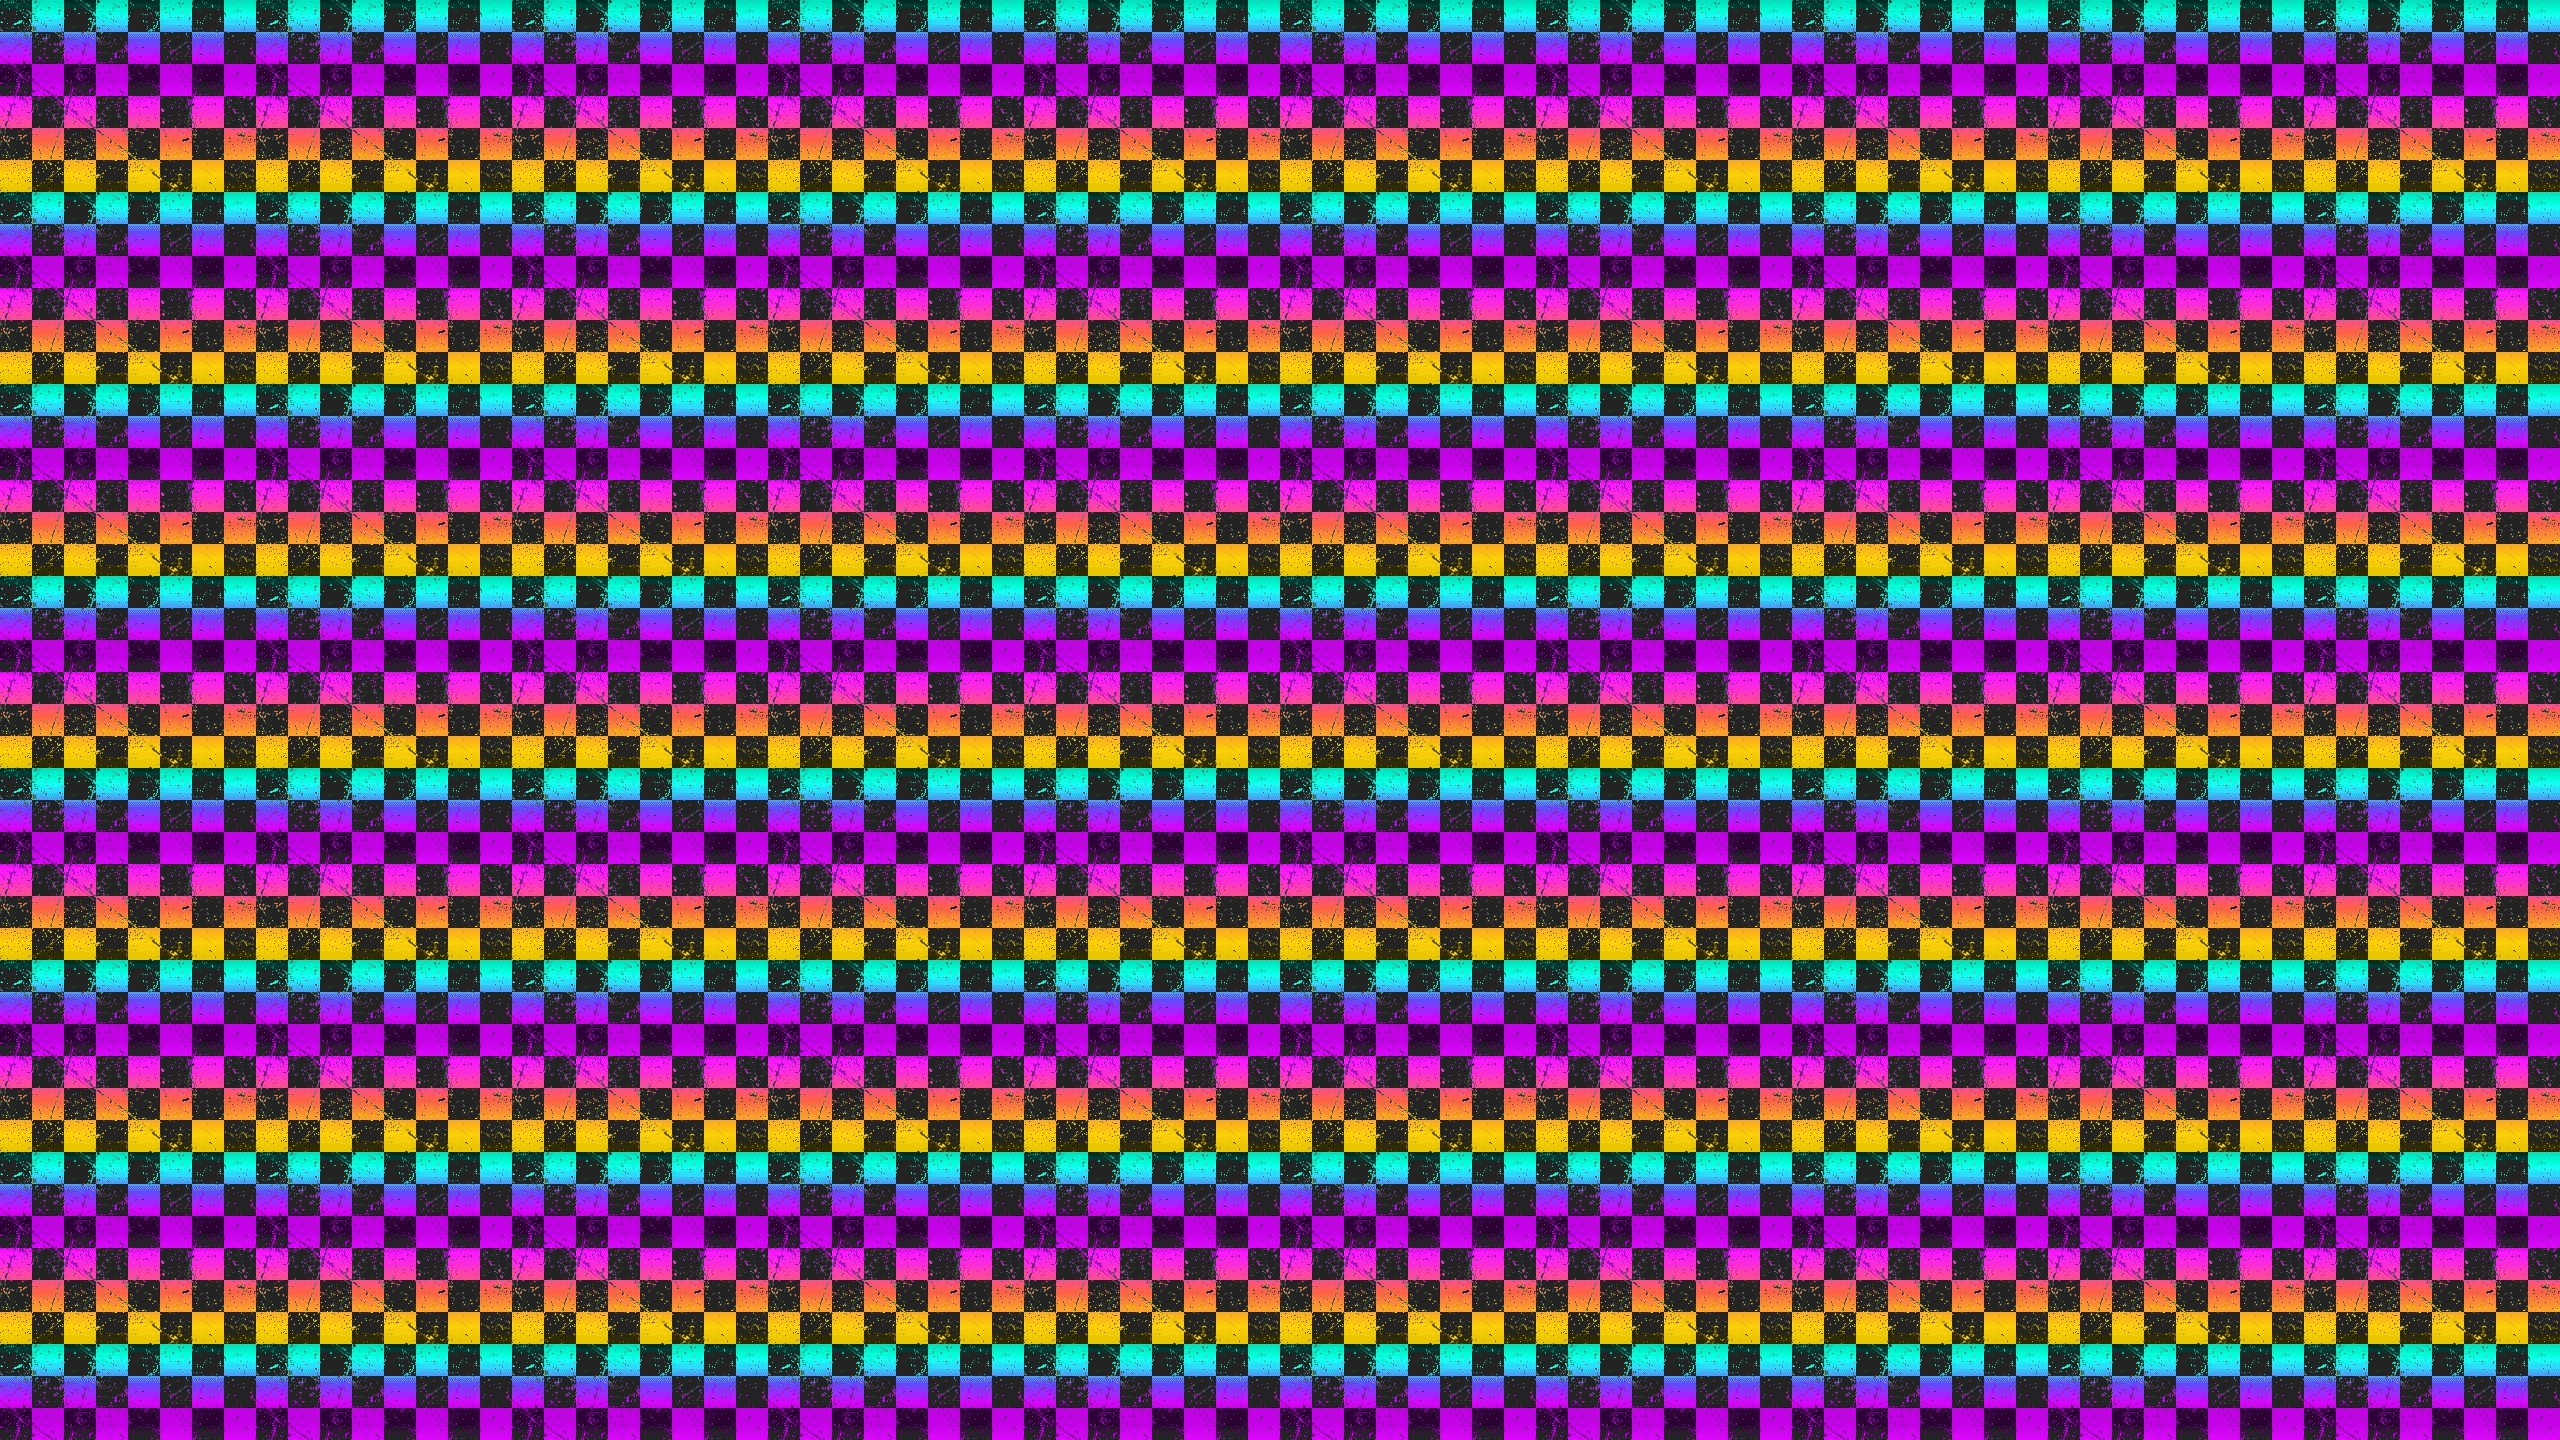 desktop wallpaper tumblr,purple,violet,pattern,line,magenta